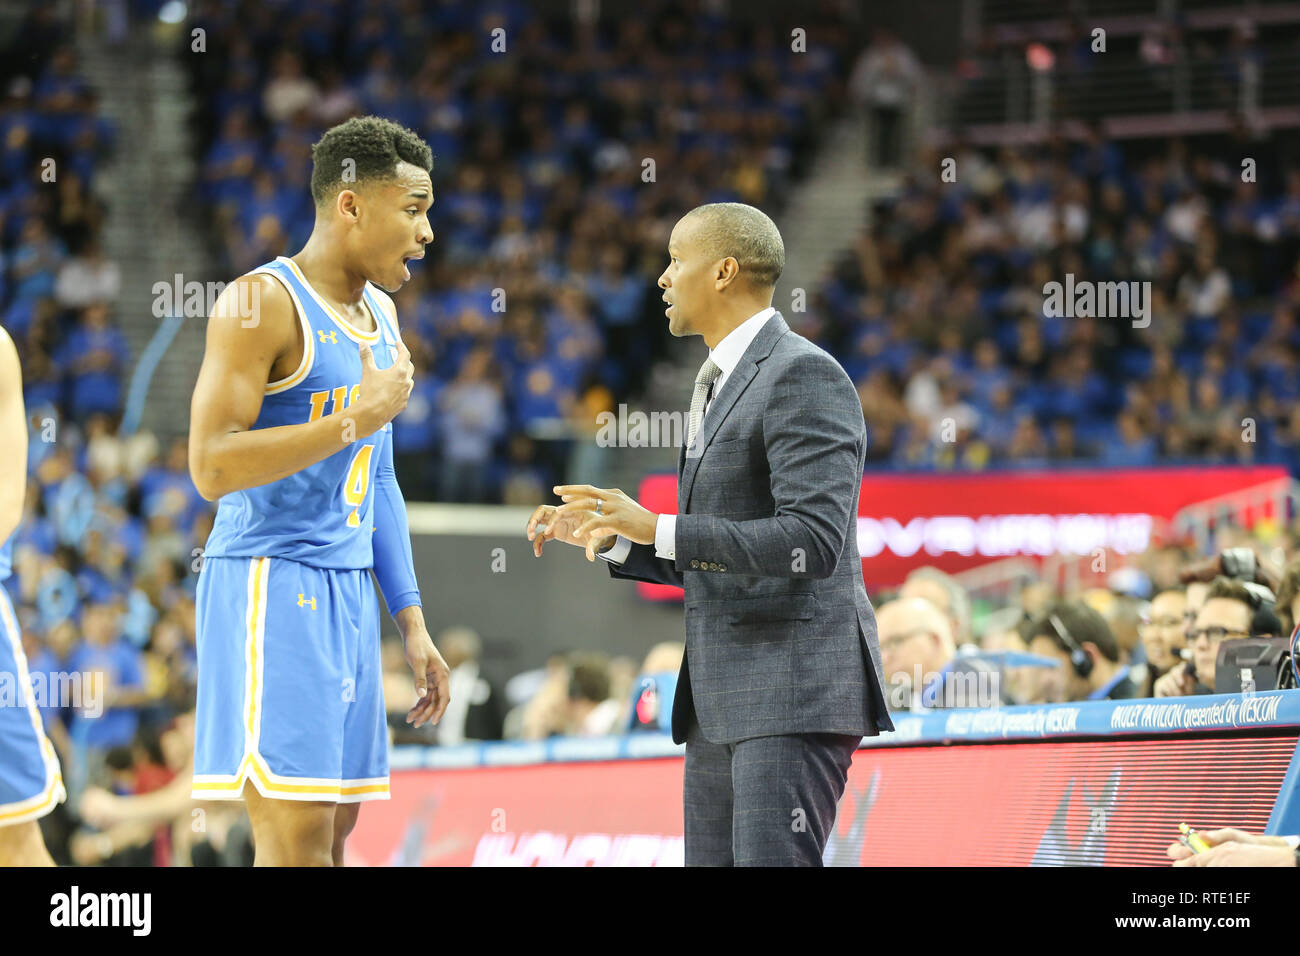 Tyus Edney Stock Photos & Tyus Edney Stock Images - Alamy